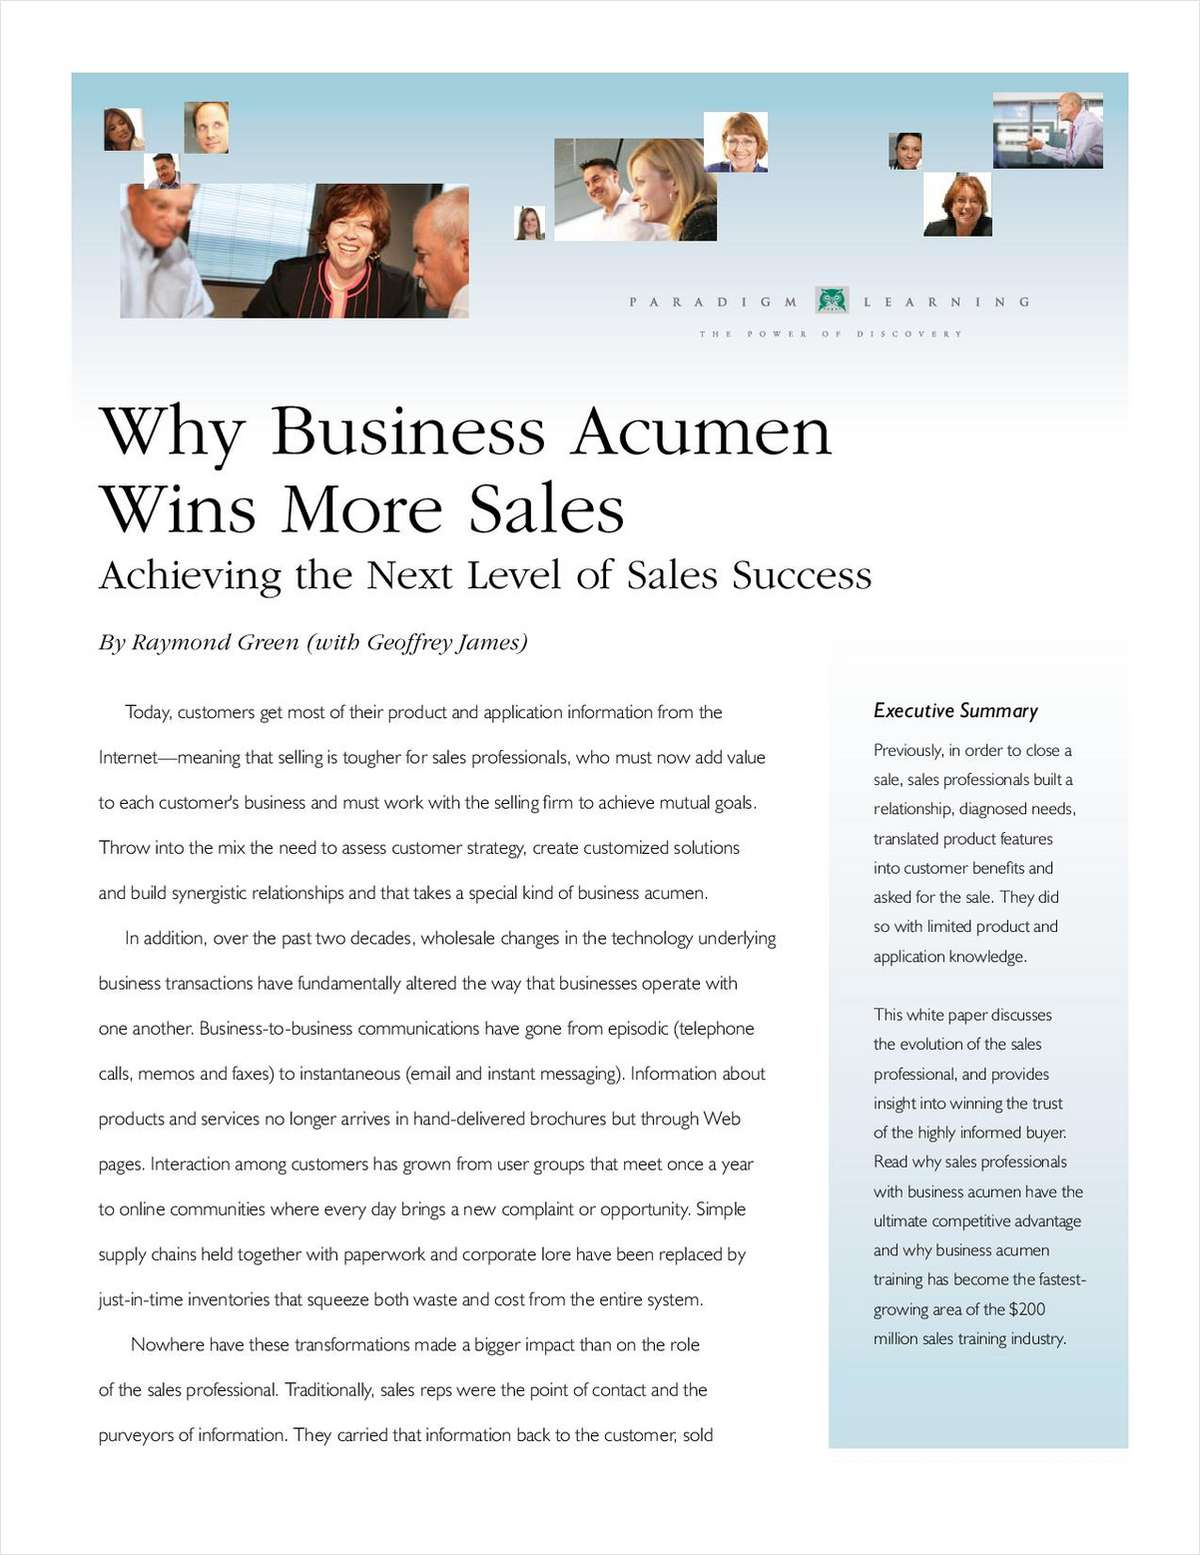 Why Business Acumen Wins More Sales